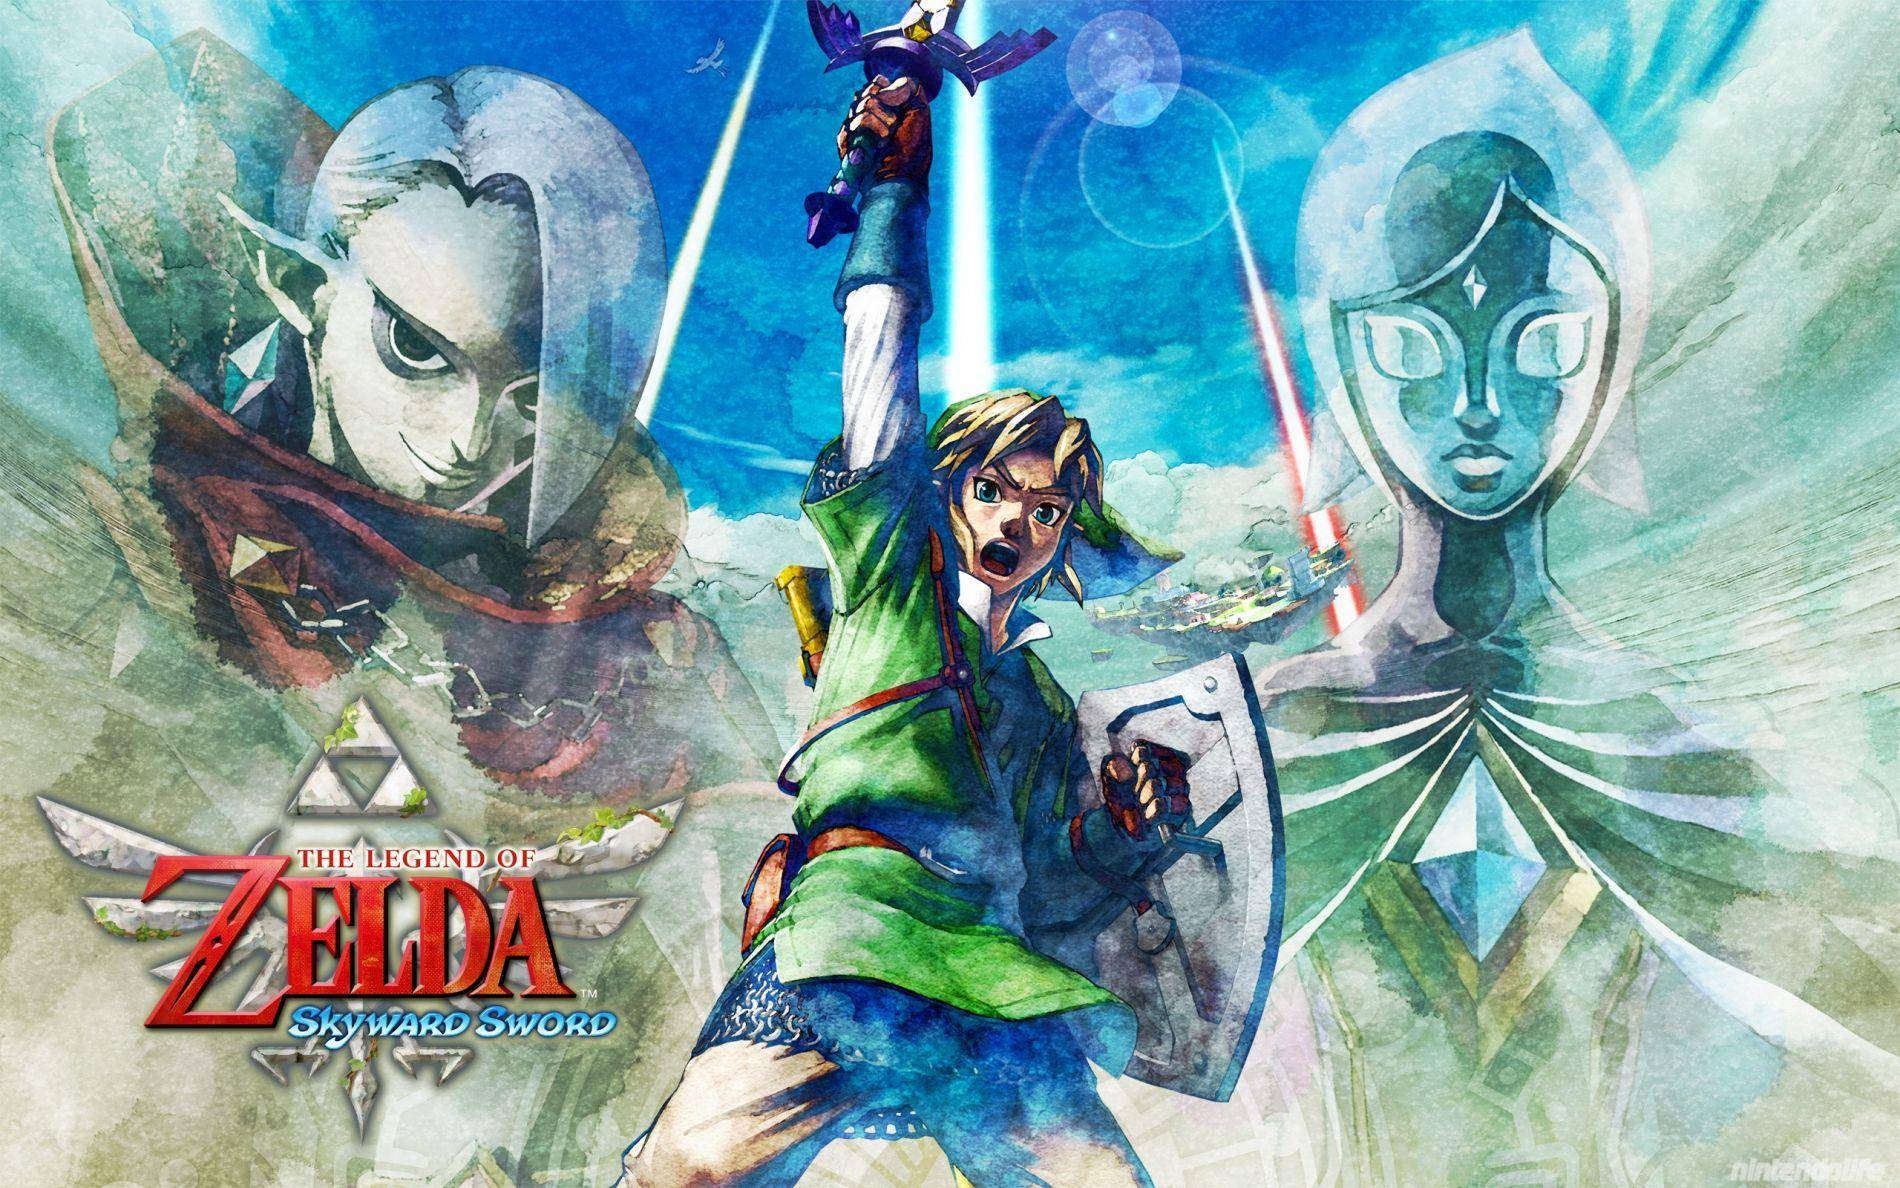 The Legend of Zelda – Skyward Sword podría llegar al Nintendo Switch